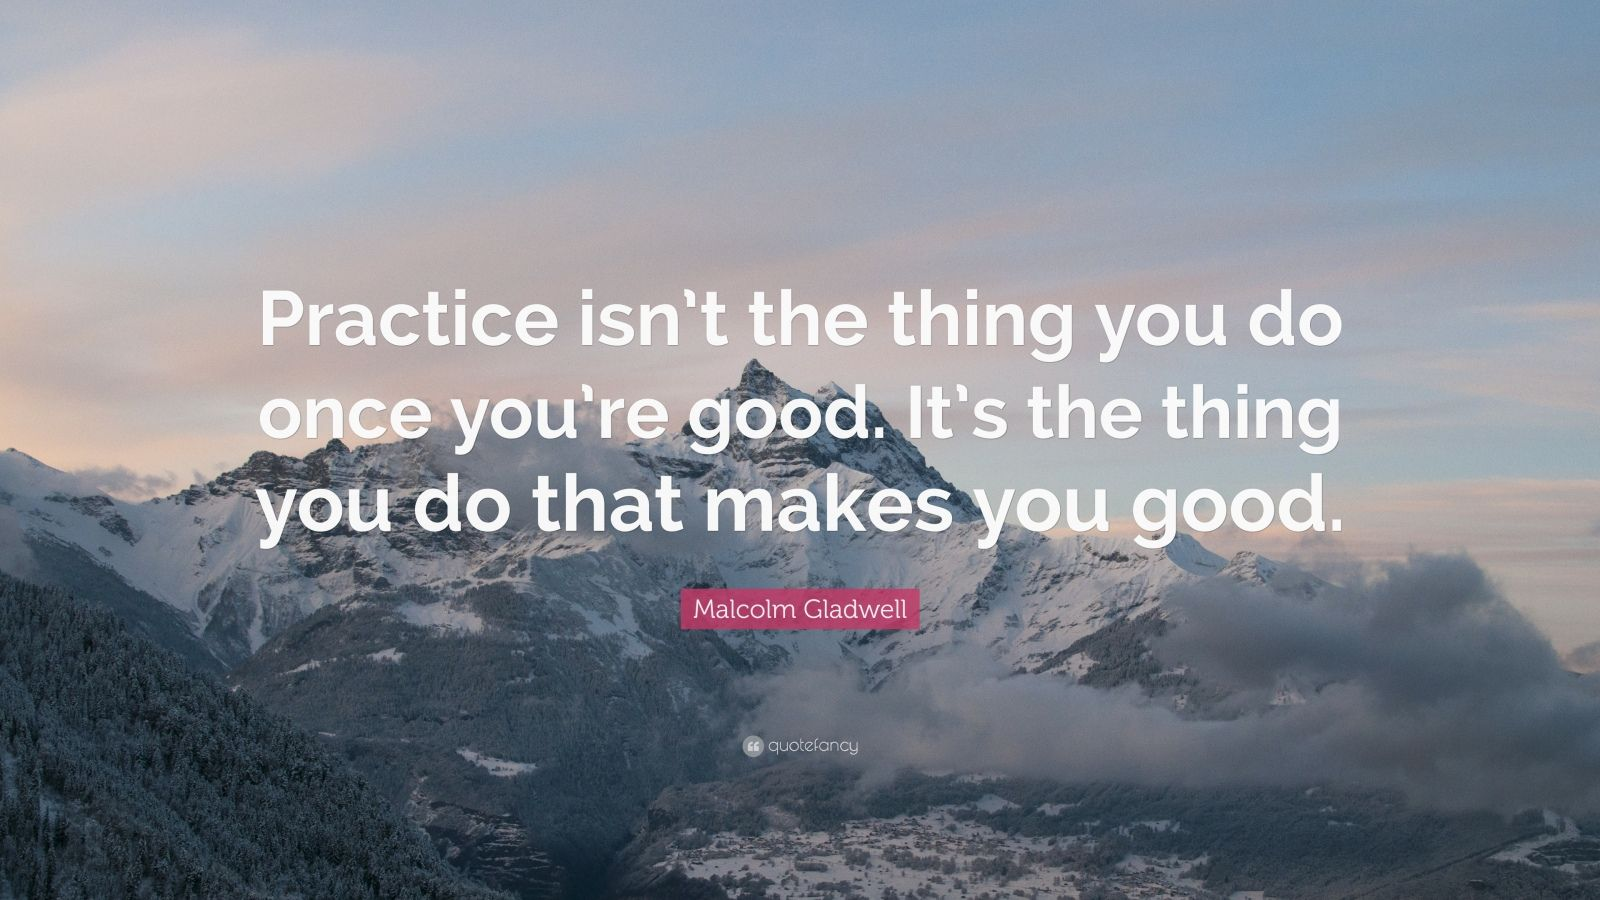 """Malcolm Gladwell Quote: """"Practice isn't the thing you do once you're good. It's the thing you do that makes you good."""""""